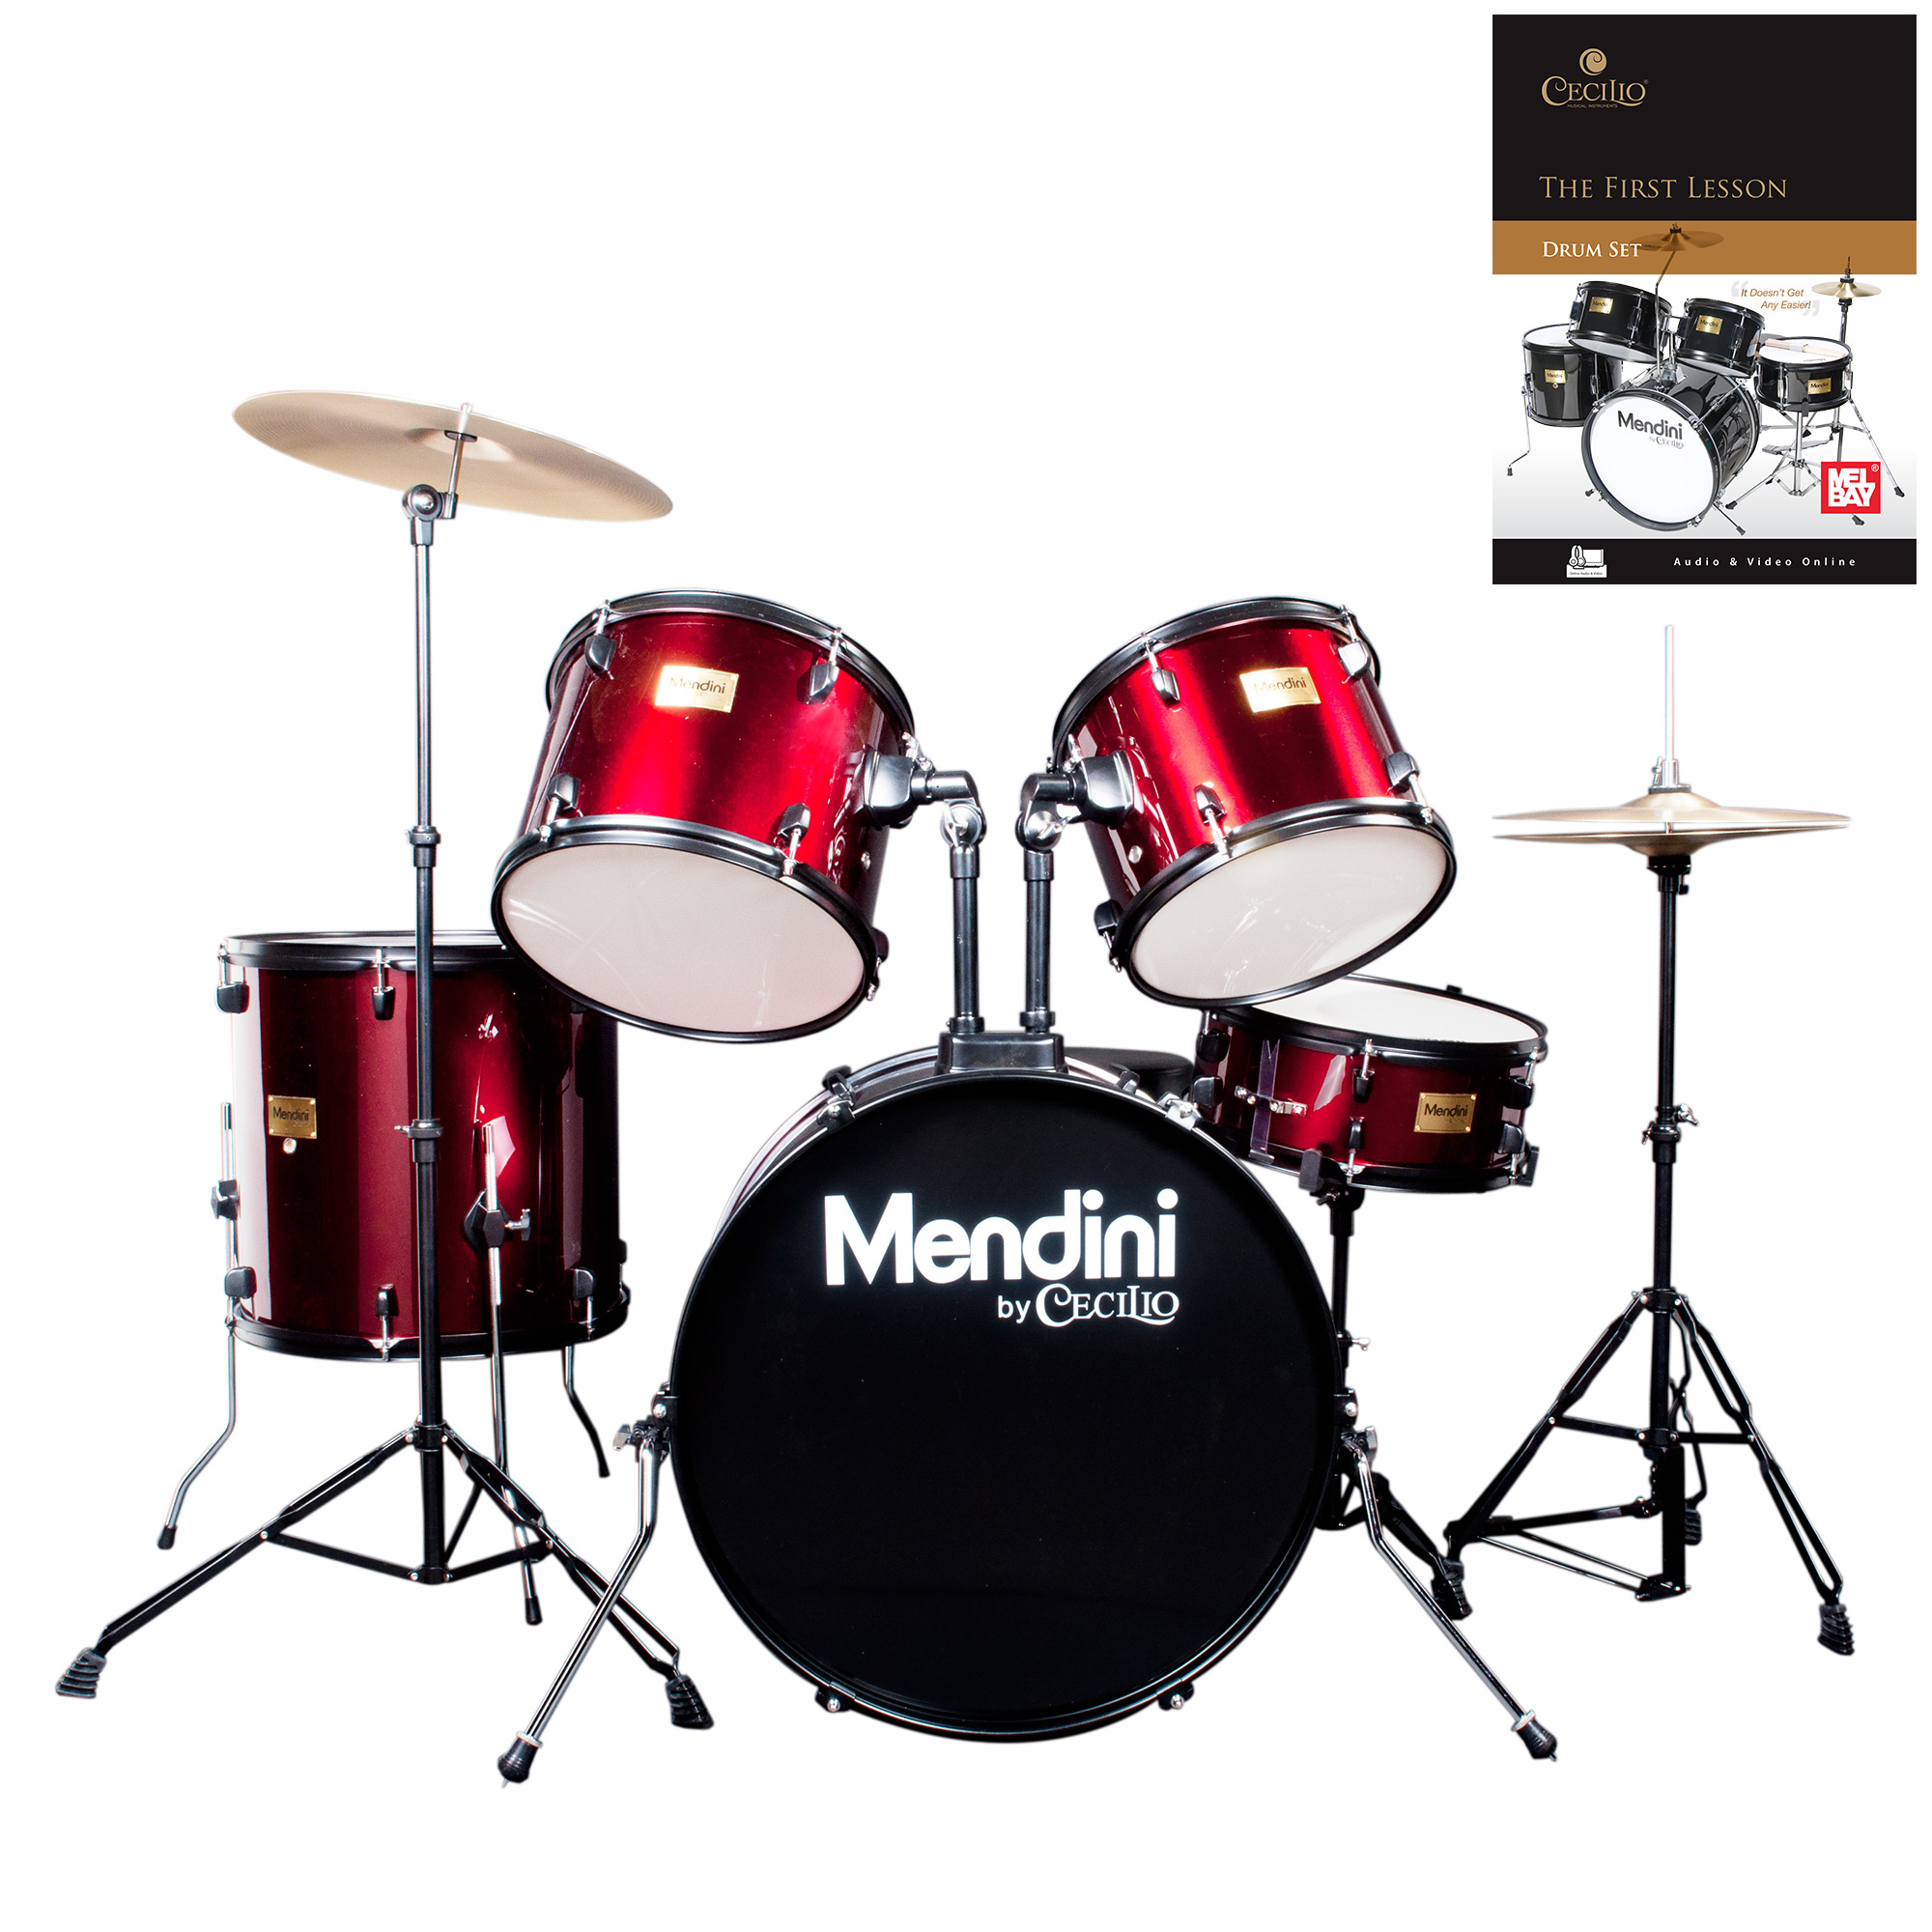 Mendini by Cecilio Complete Full Size 5-Piece Adult Drum Set w/ Cymbals Pedal Throne Sticks, Lesson Book, Metallic Bright Red MDS80-BR